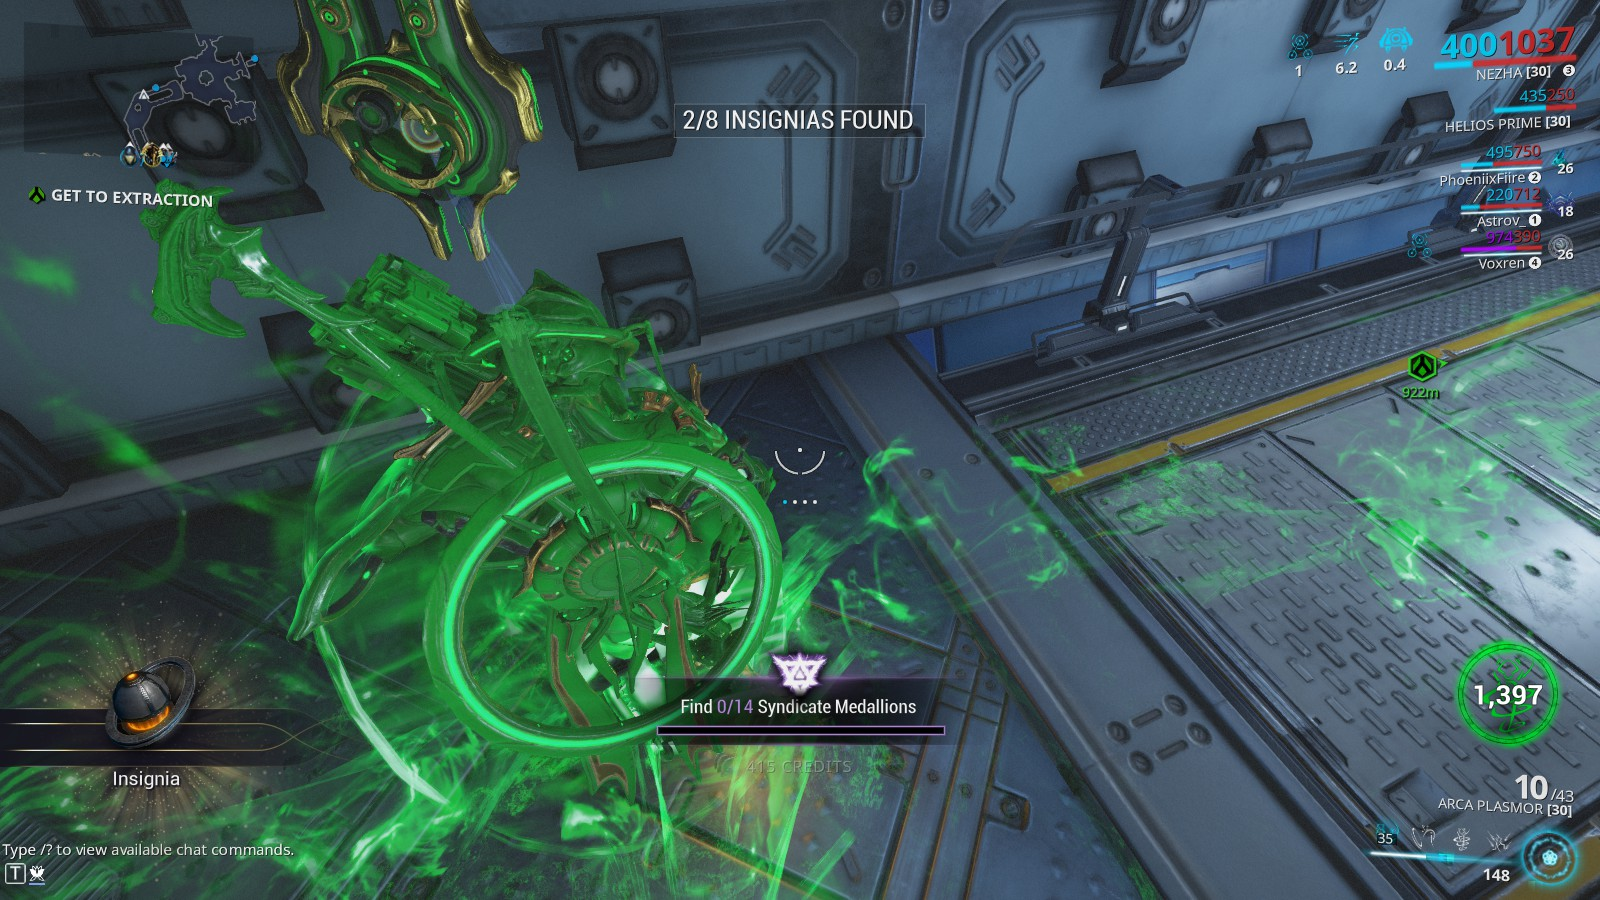 Veiled Riven Mod not counting medallions - PC Bugs - Warframe Forums